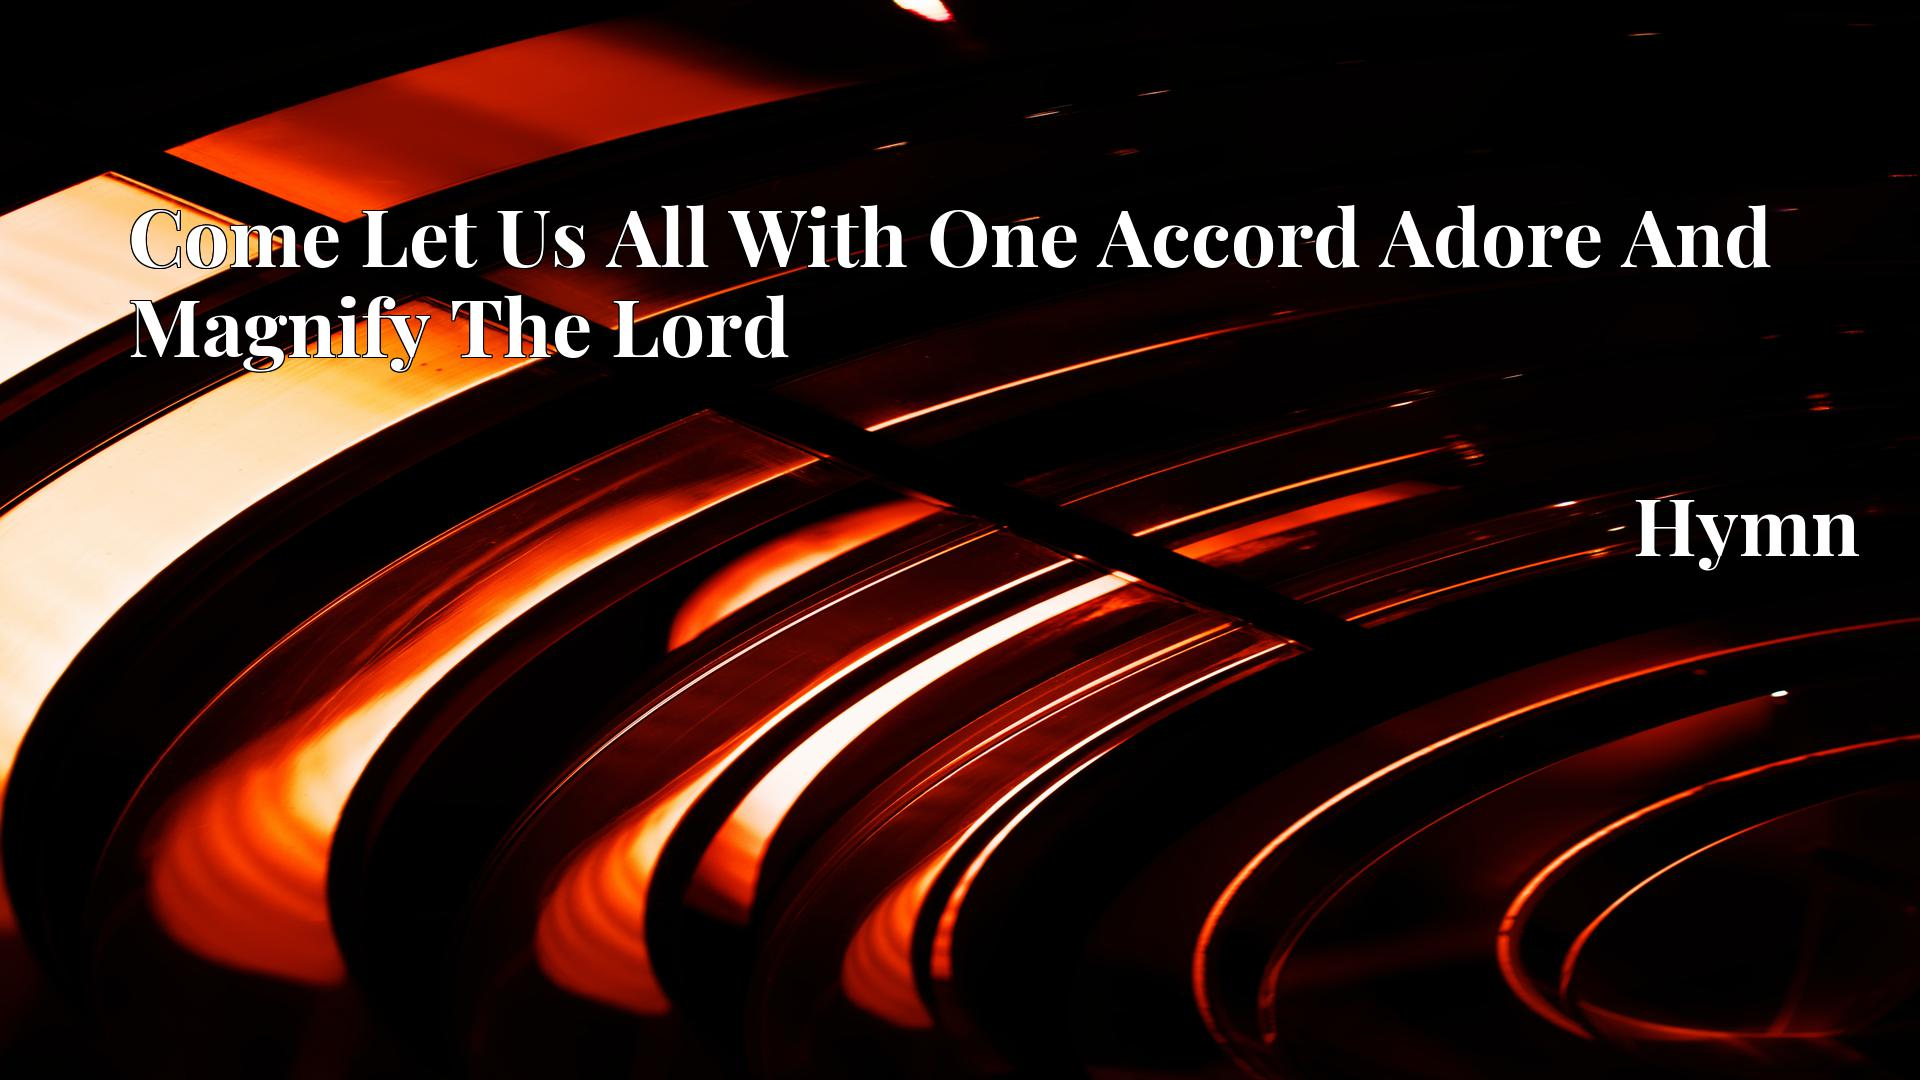 Come Let Us All With One Accord Adore And Magnify The Lord - Hymn